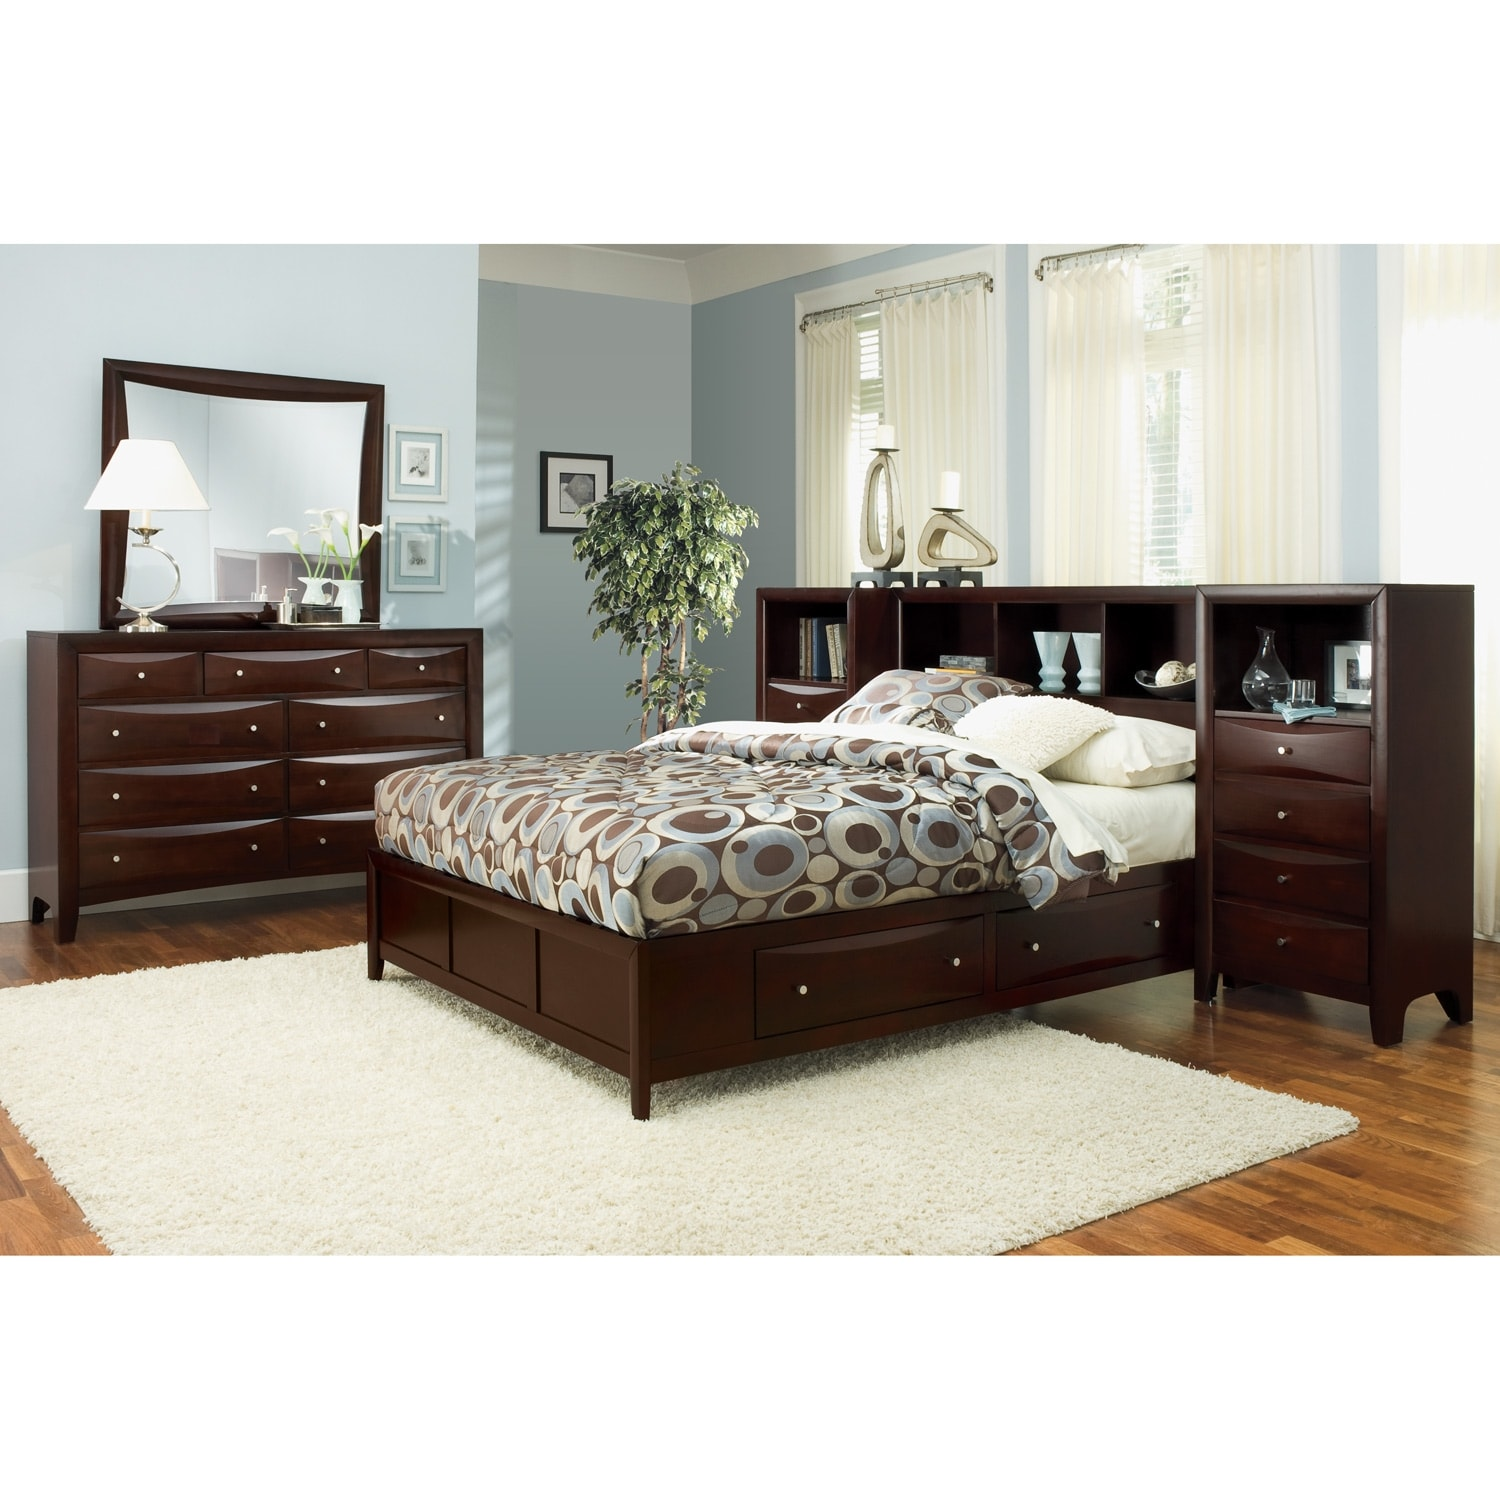 [Clarion 7 Pc. King Wall Bedroom]